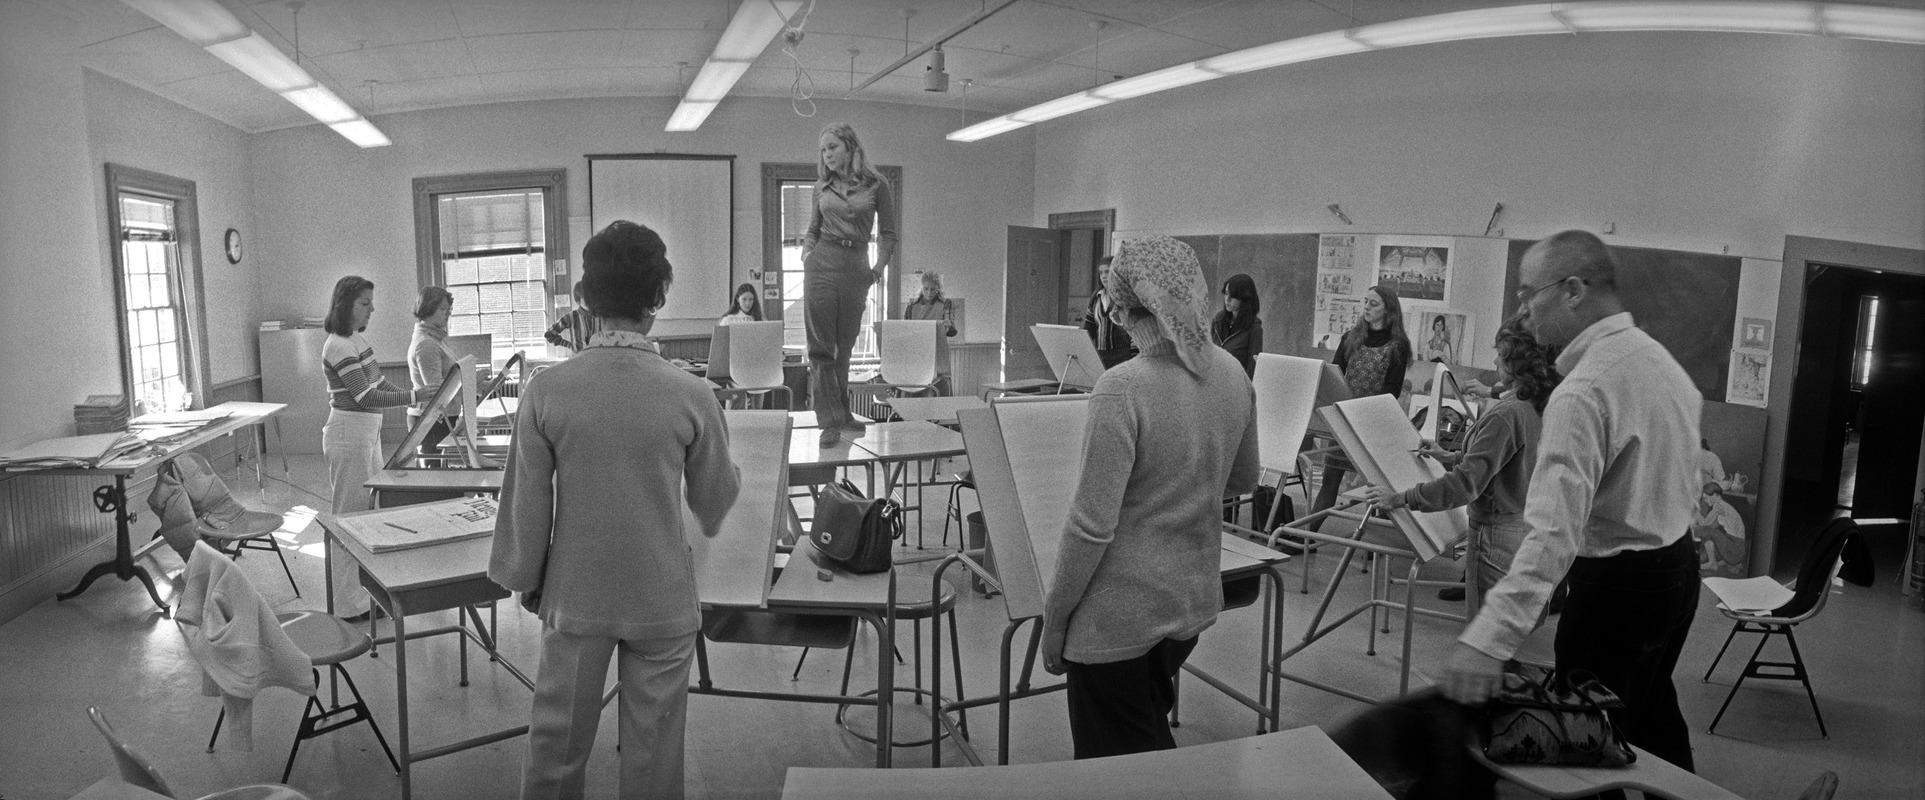 Student poses for life-drawing class, Boston University